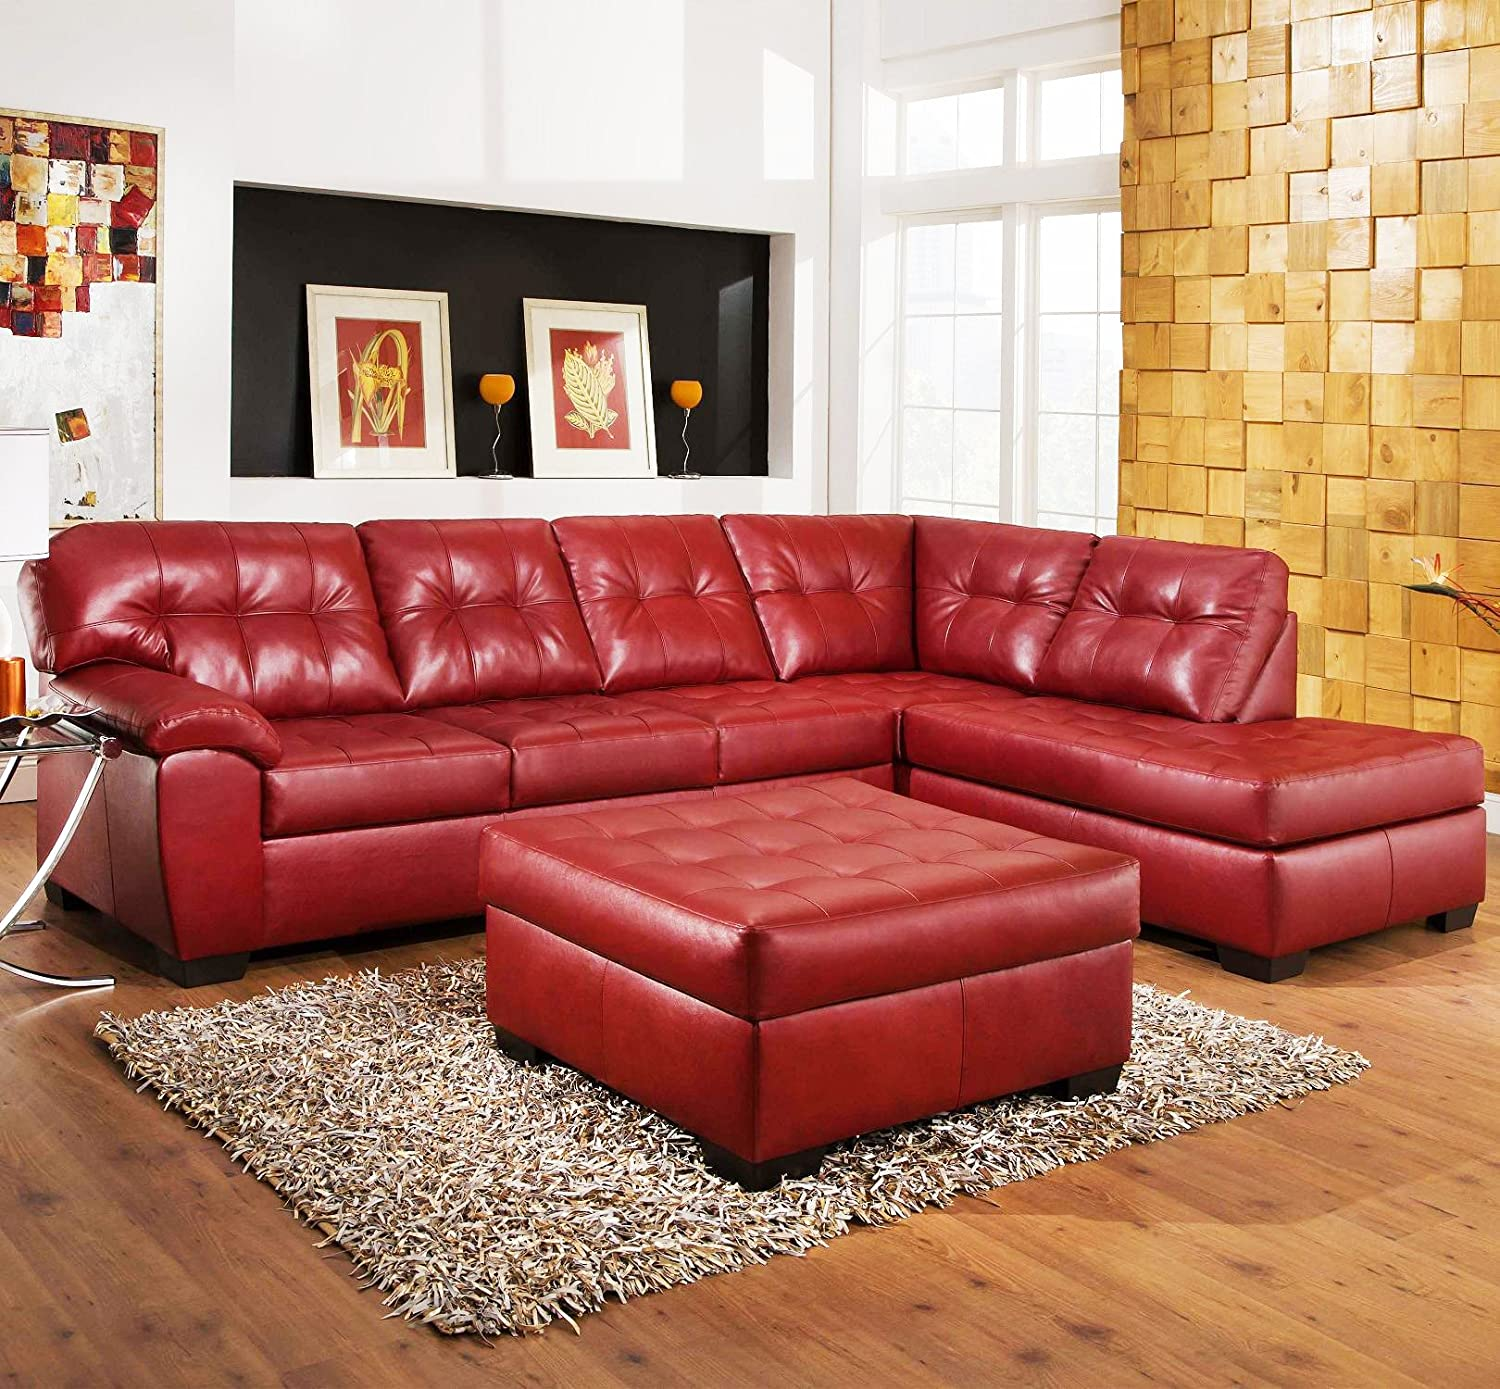 Amazon com roundhill furniture addiya 3 piece bonded leather sectional sofa with chaise and ottoman set red kitchen dining